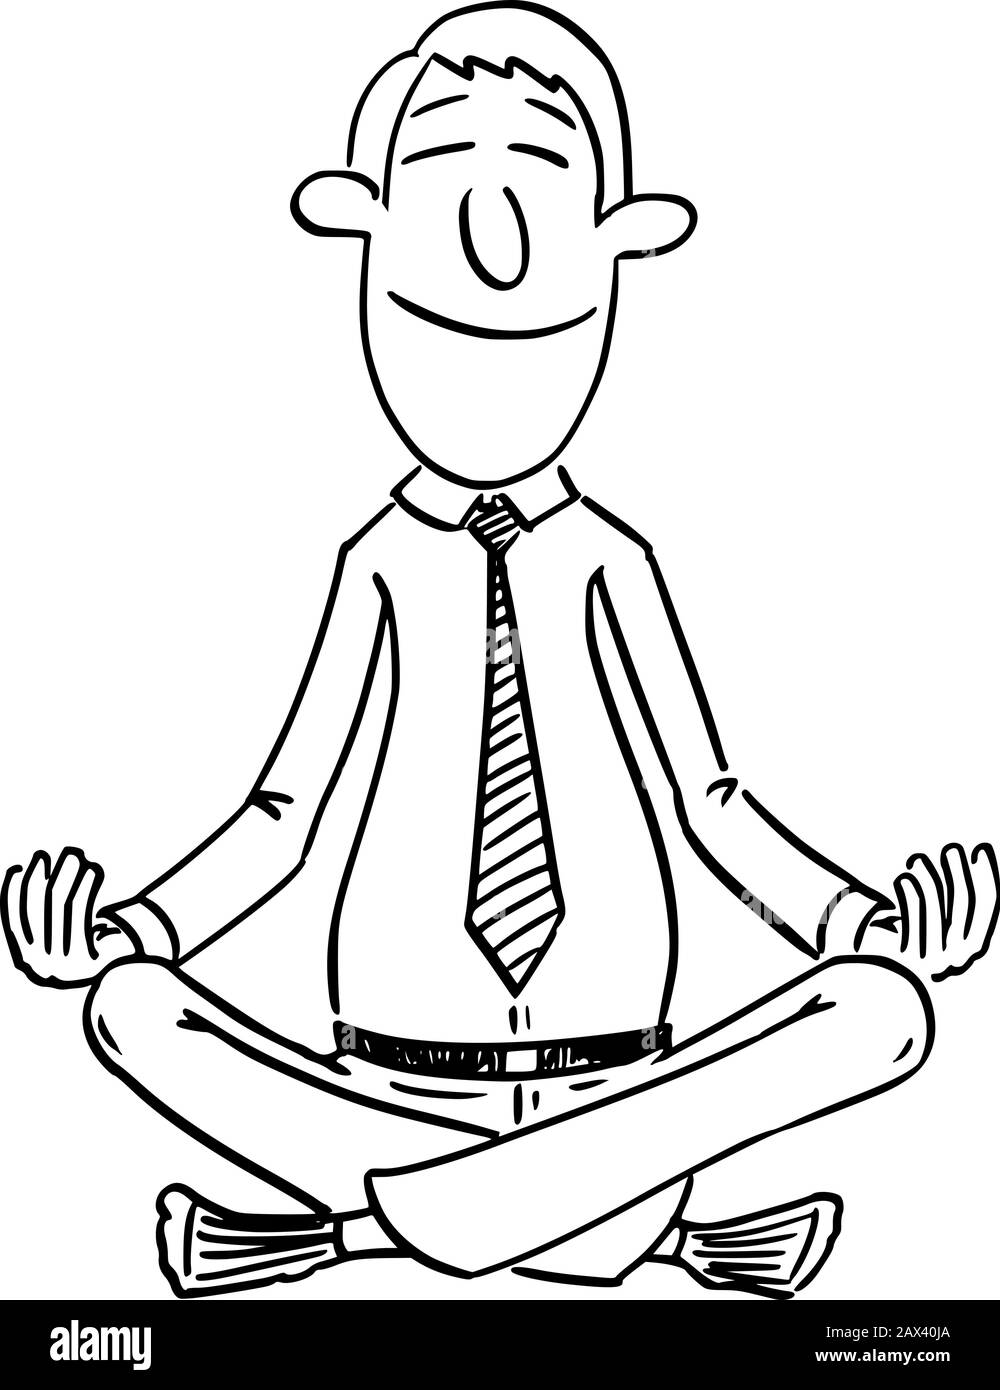 Man In Yoga Position Cartoon High Resolution Stock Photography And Images Alamy